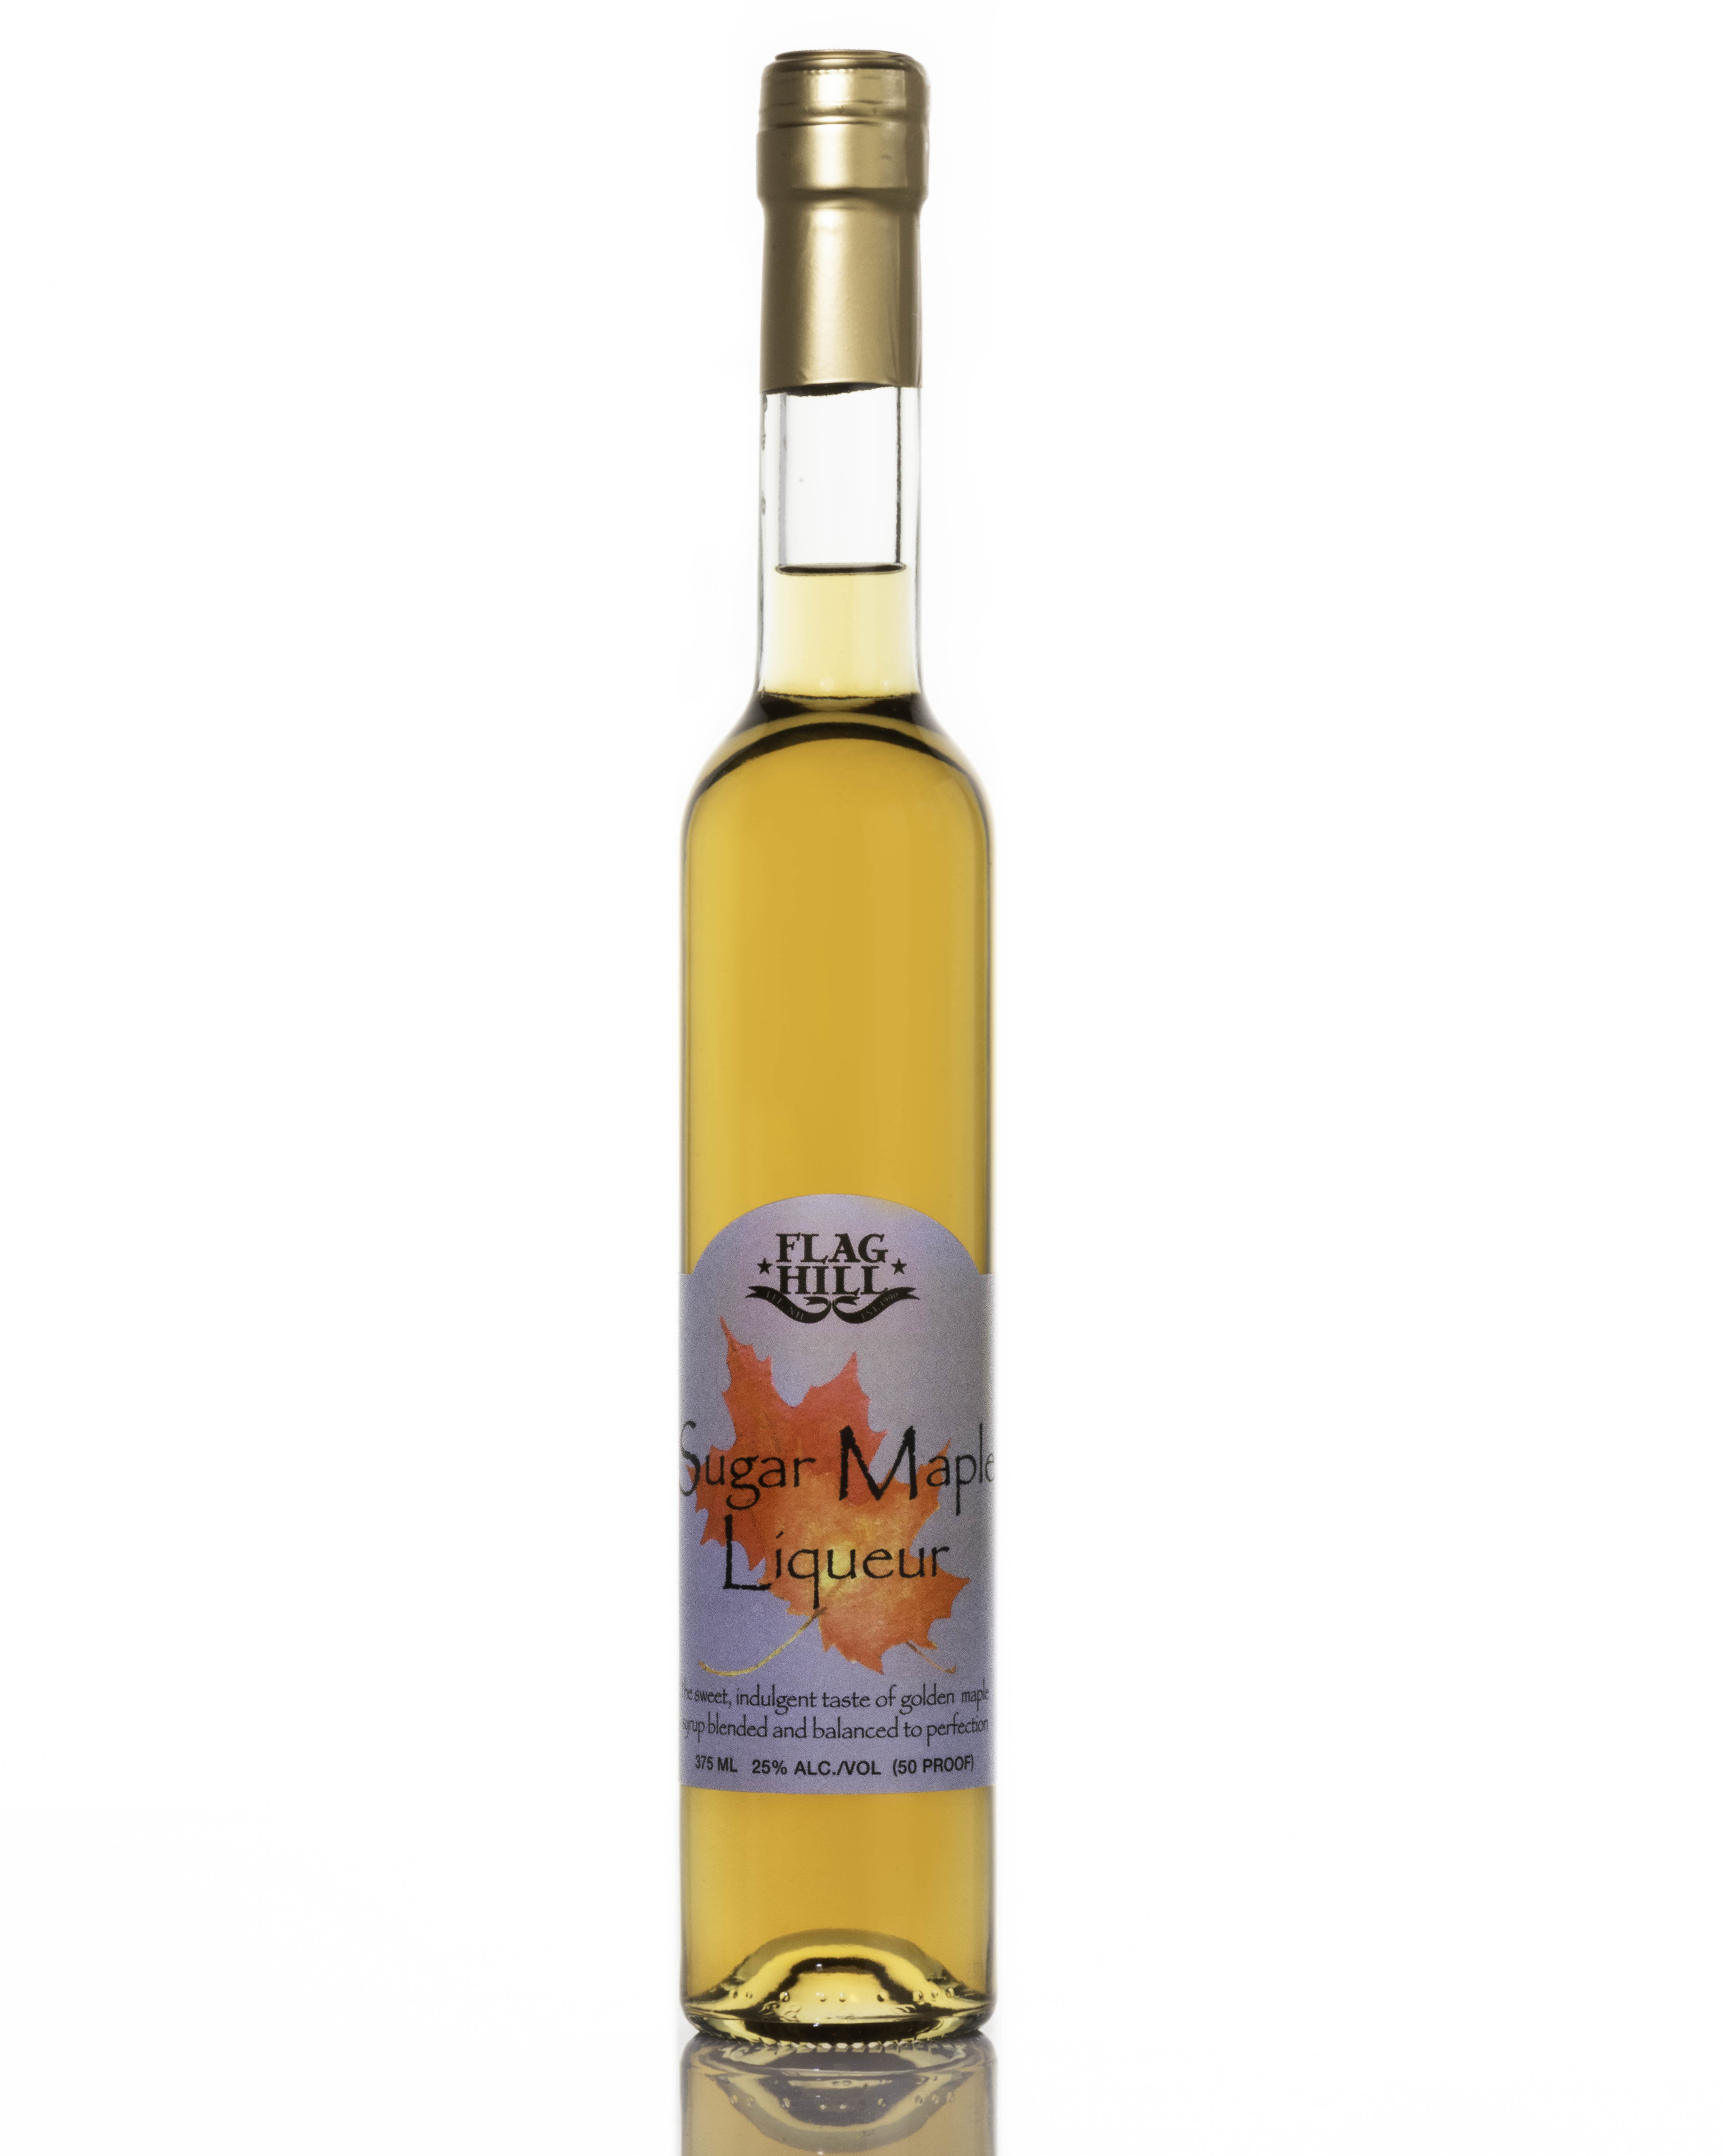 Flag Hill Distillery Sugar Maple Liqueur